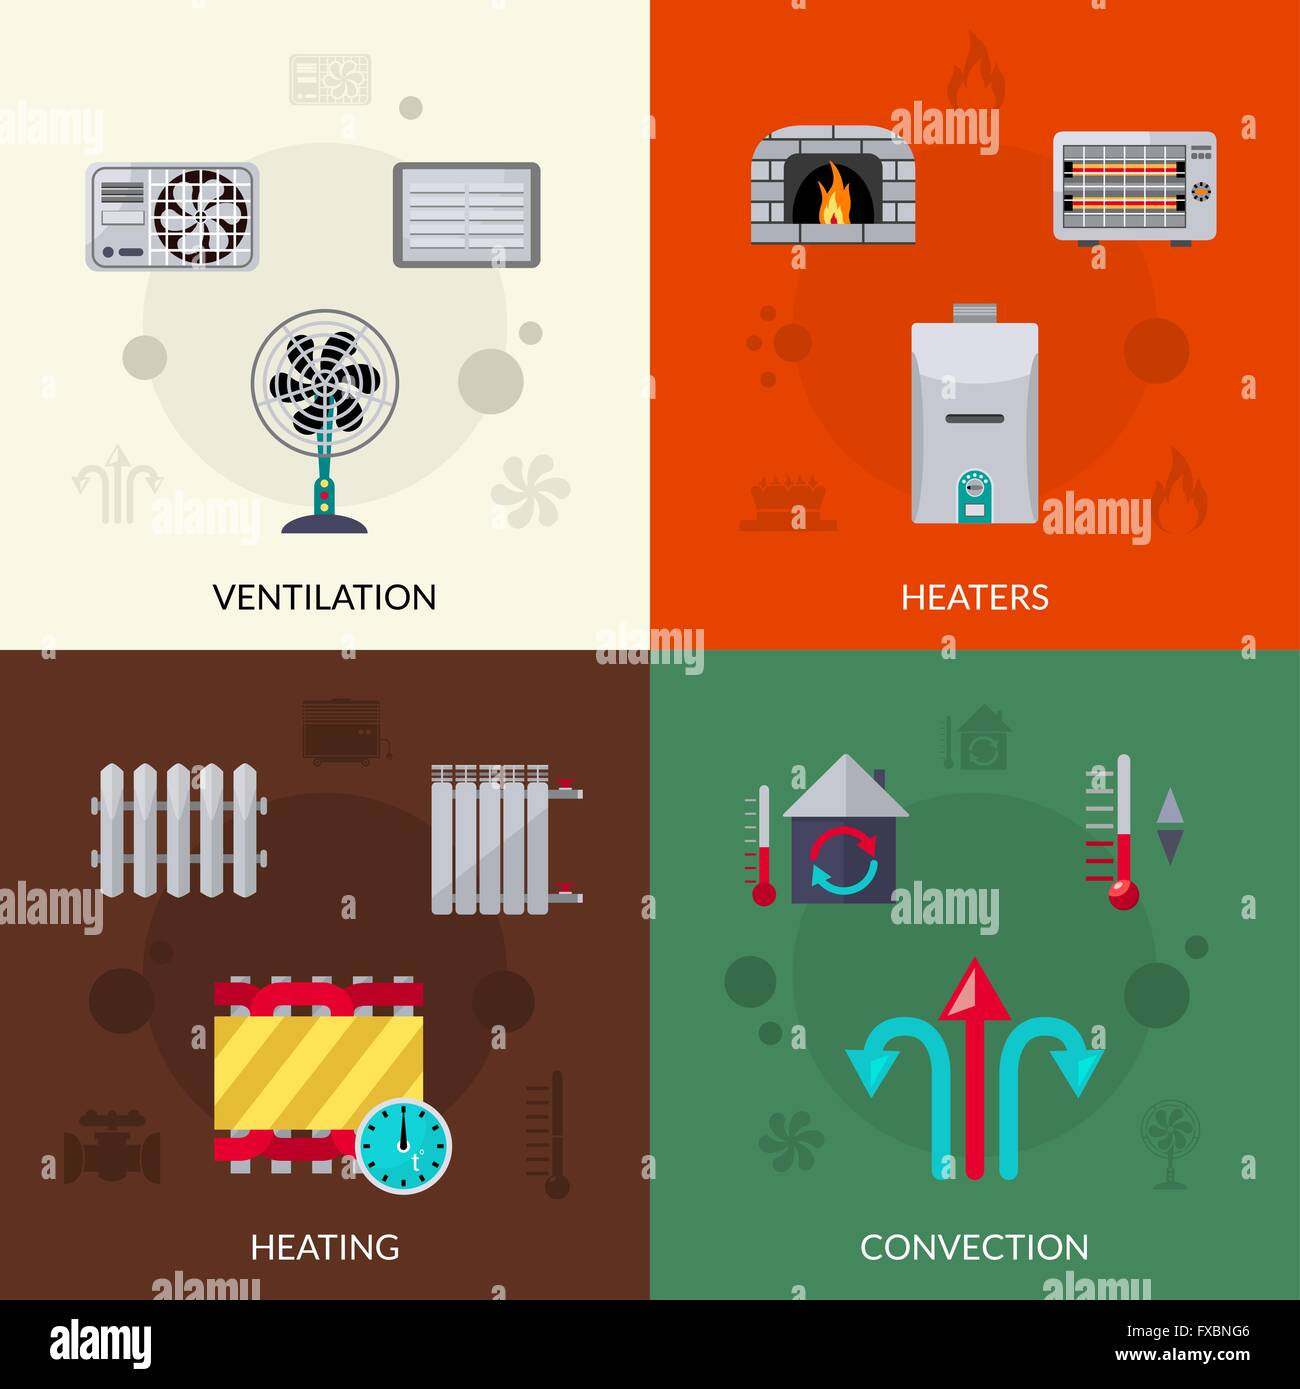 Heating Ventilation And Convection Icons Set Stock Vector